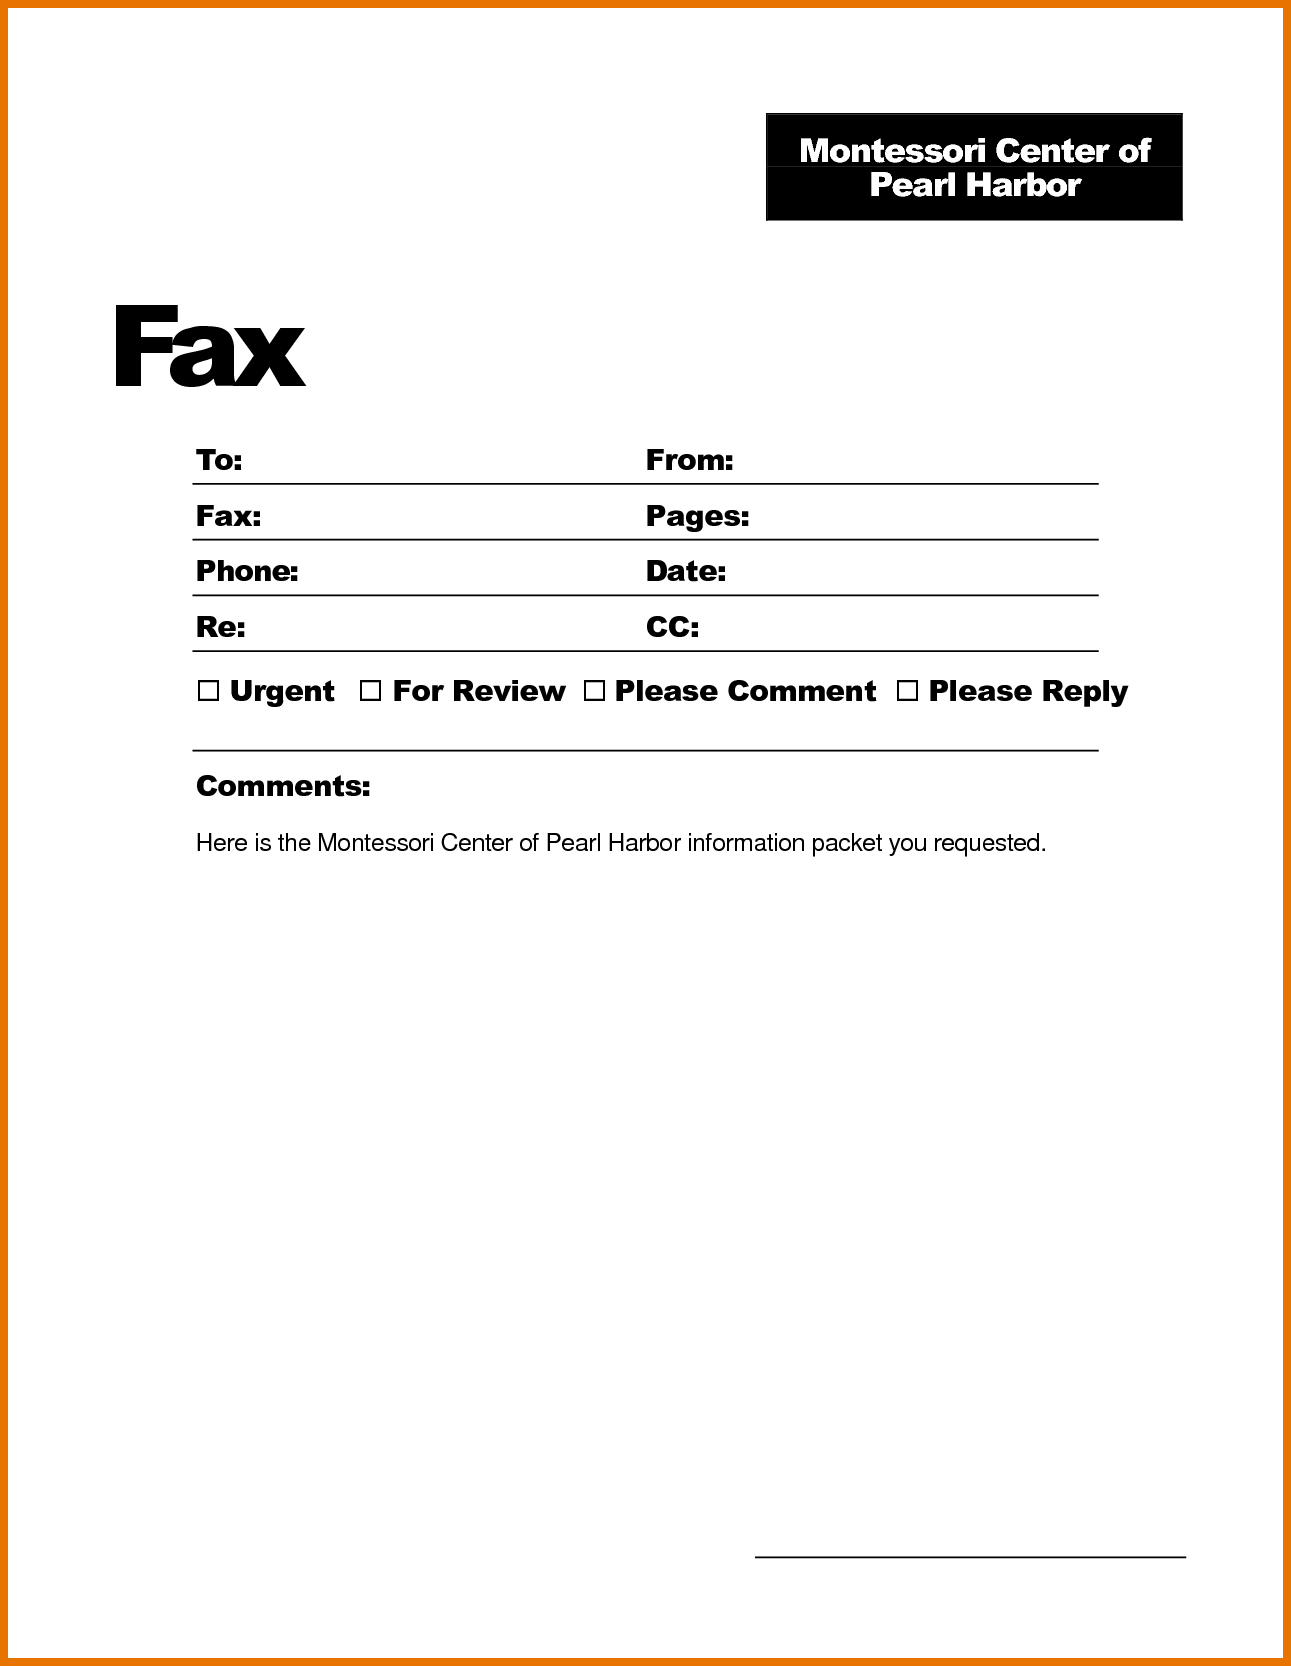 how to prepare a fax cover sheet